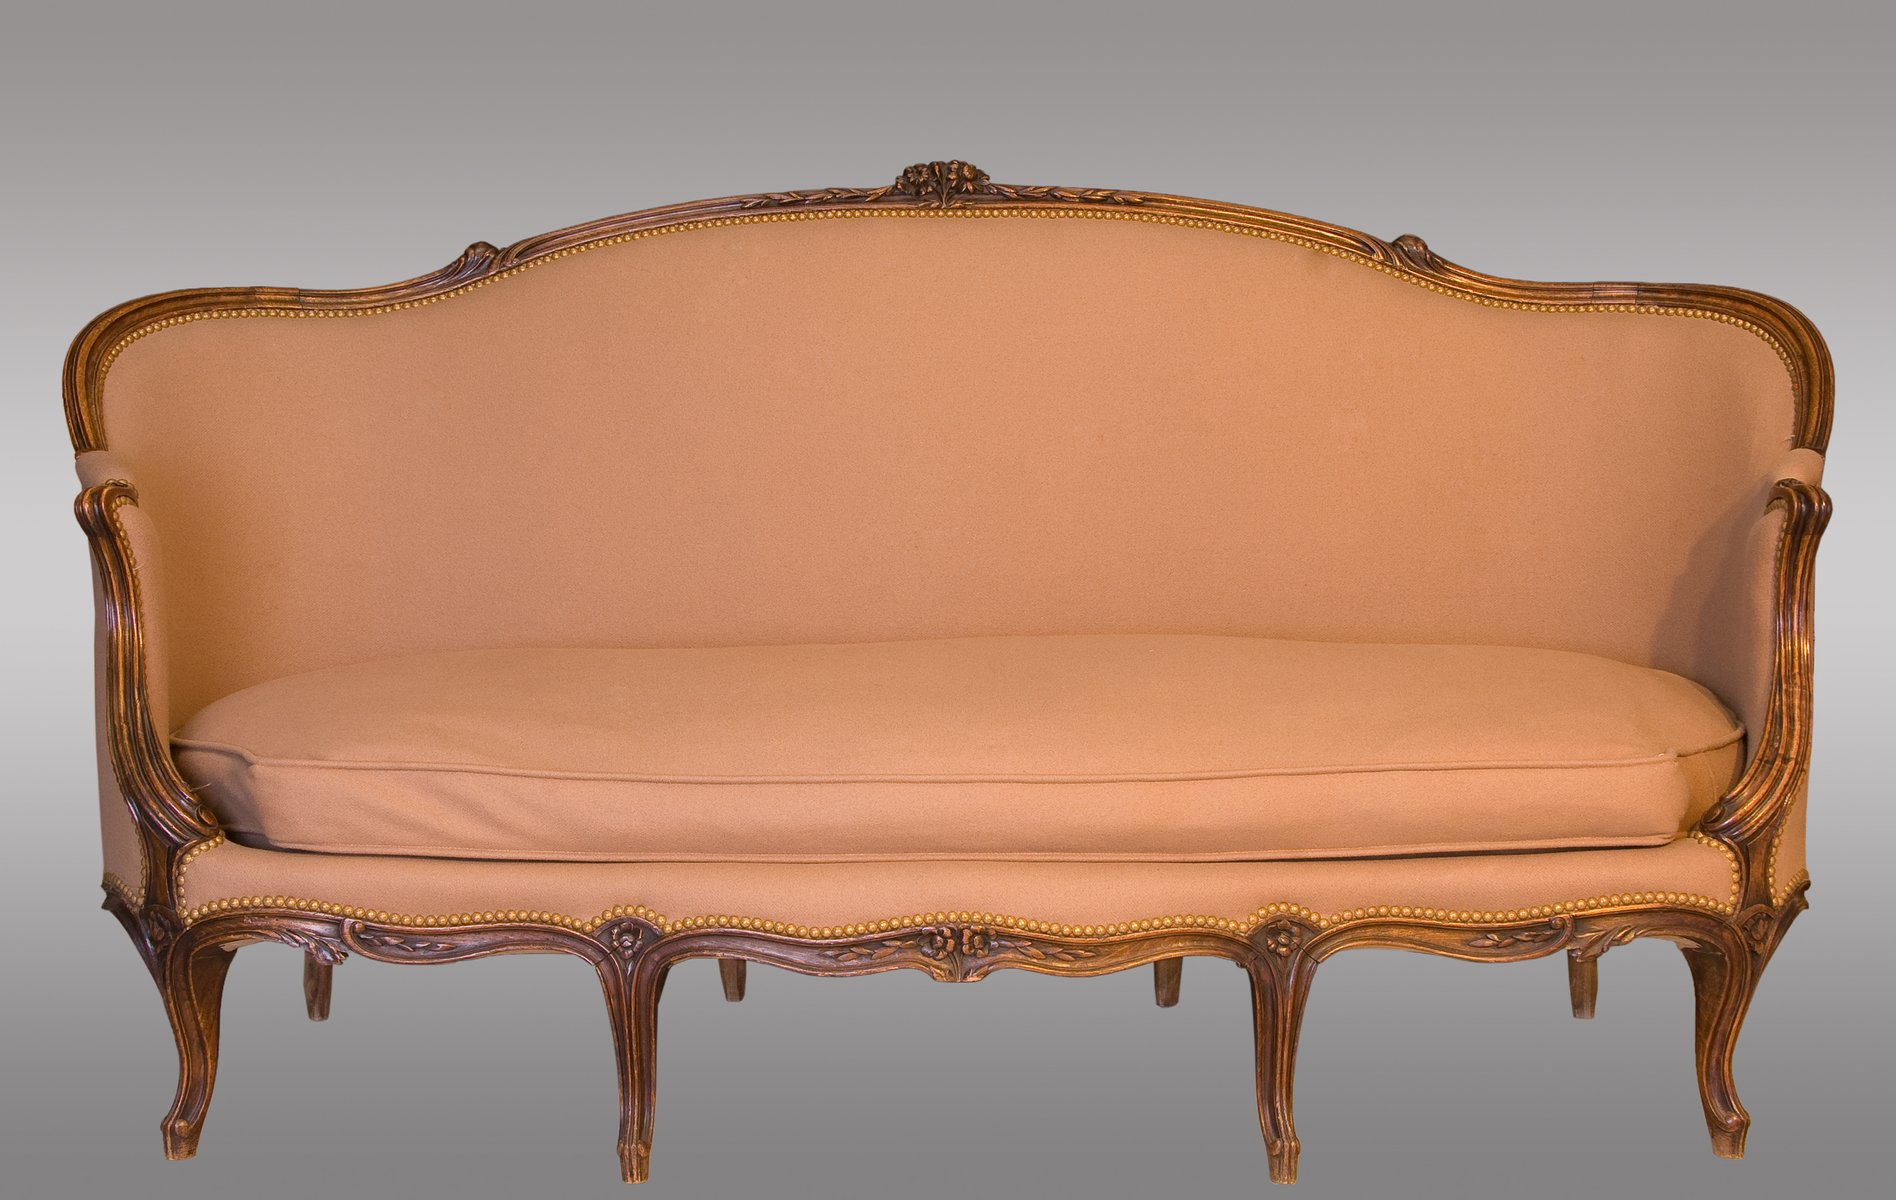 Antique French Louis XV Canapé for sale at Pamono